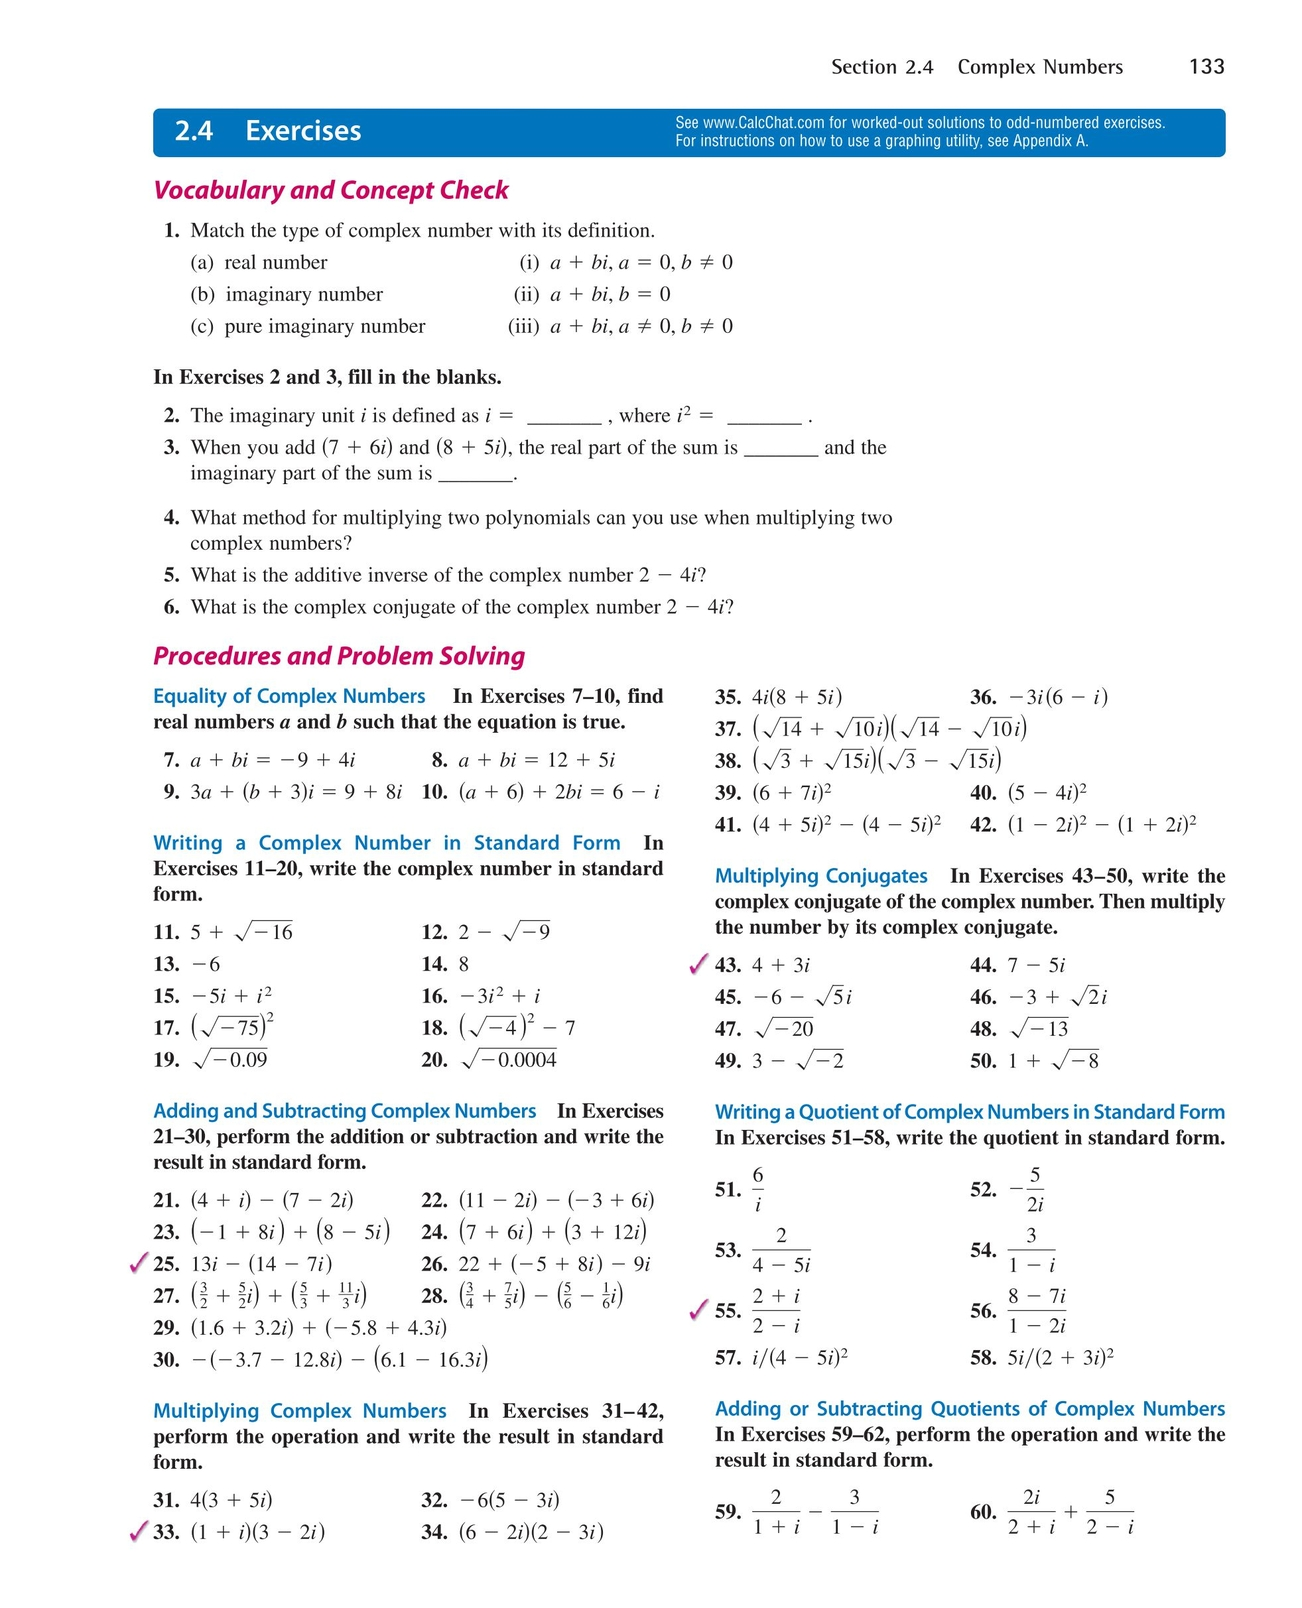 Worksheets Imaginary Numbers Worksheet graphing complex numbers worksheet counting dimes nickels and pennies imaginary standard form gallery example ideas ngsp precalculus withlimits p0135 hires numbers